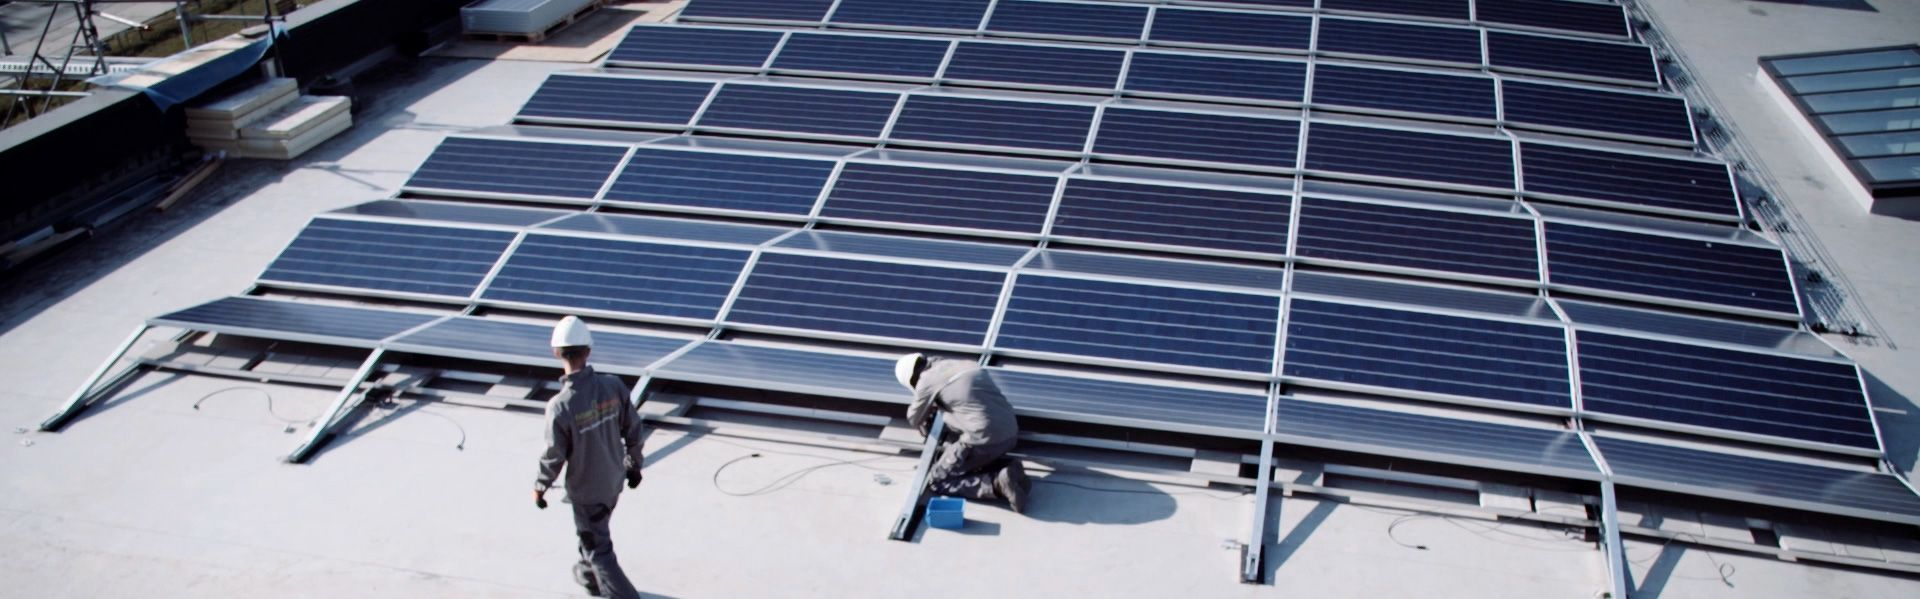 Solar for Developers and EPC Firms | SunPower Australia